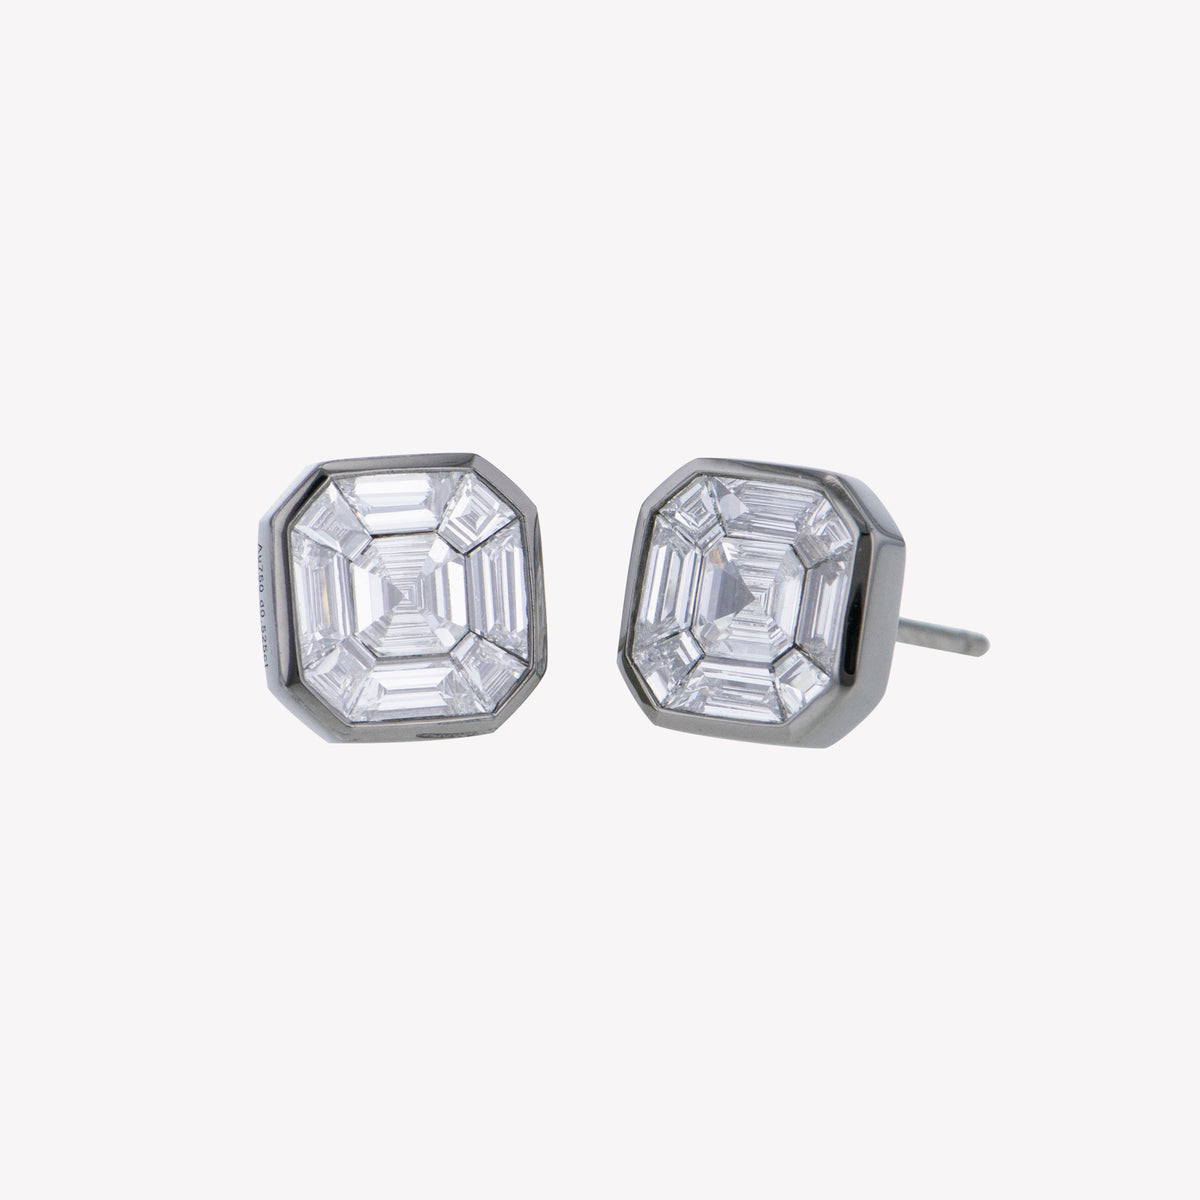 Black Gold Asscher Studs Diamond Earrings